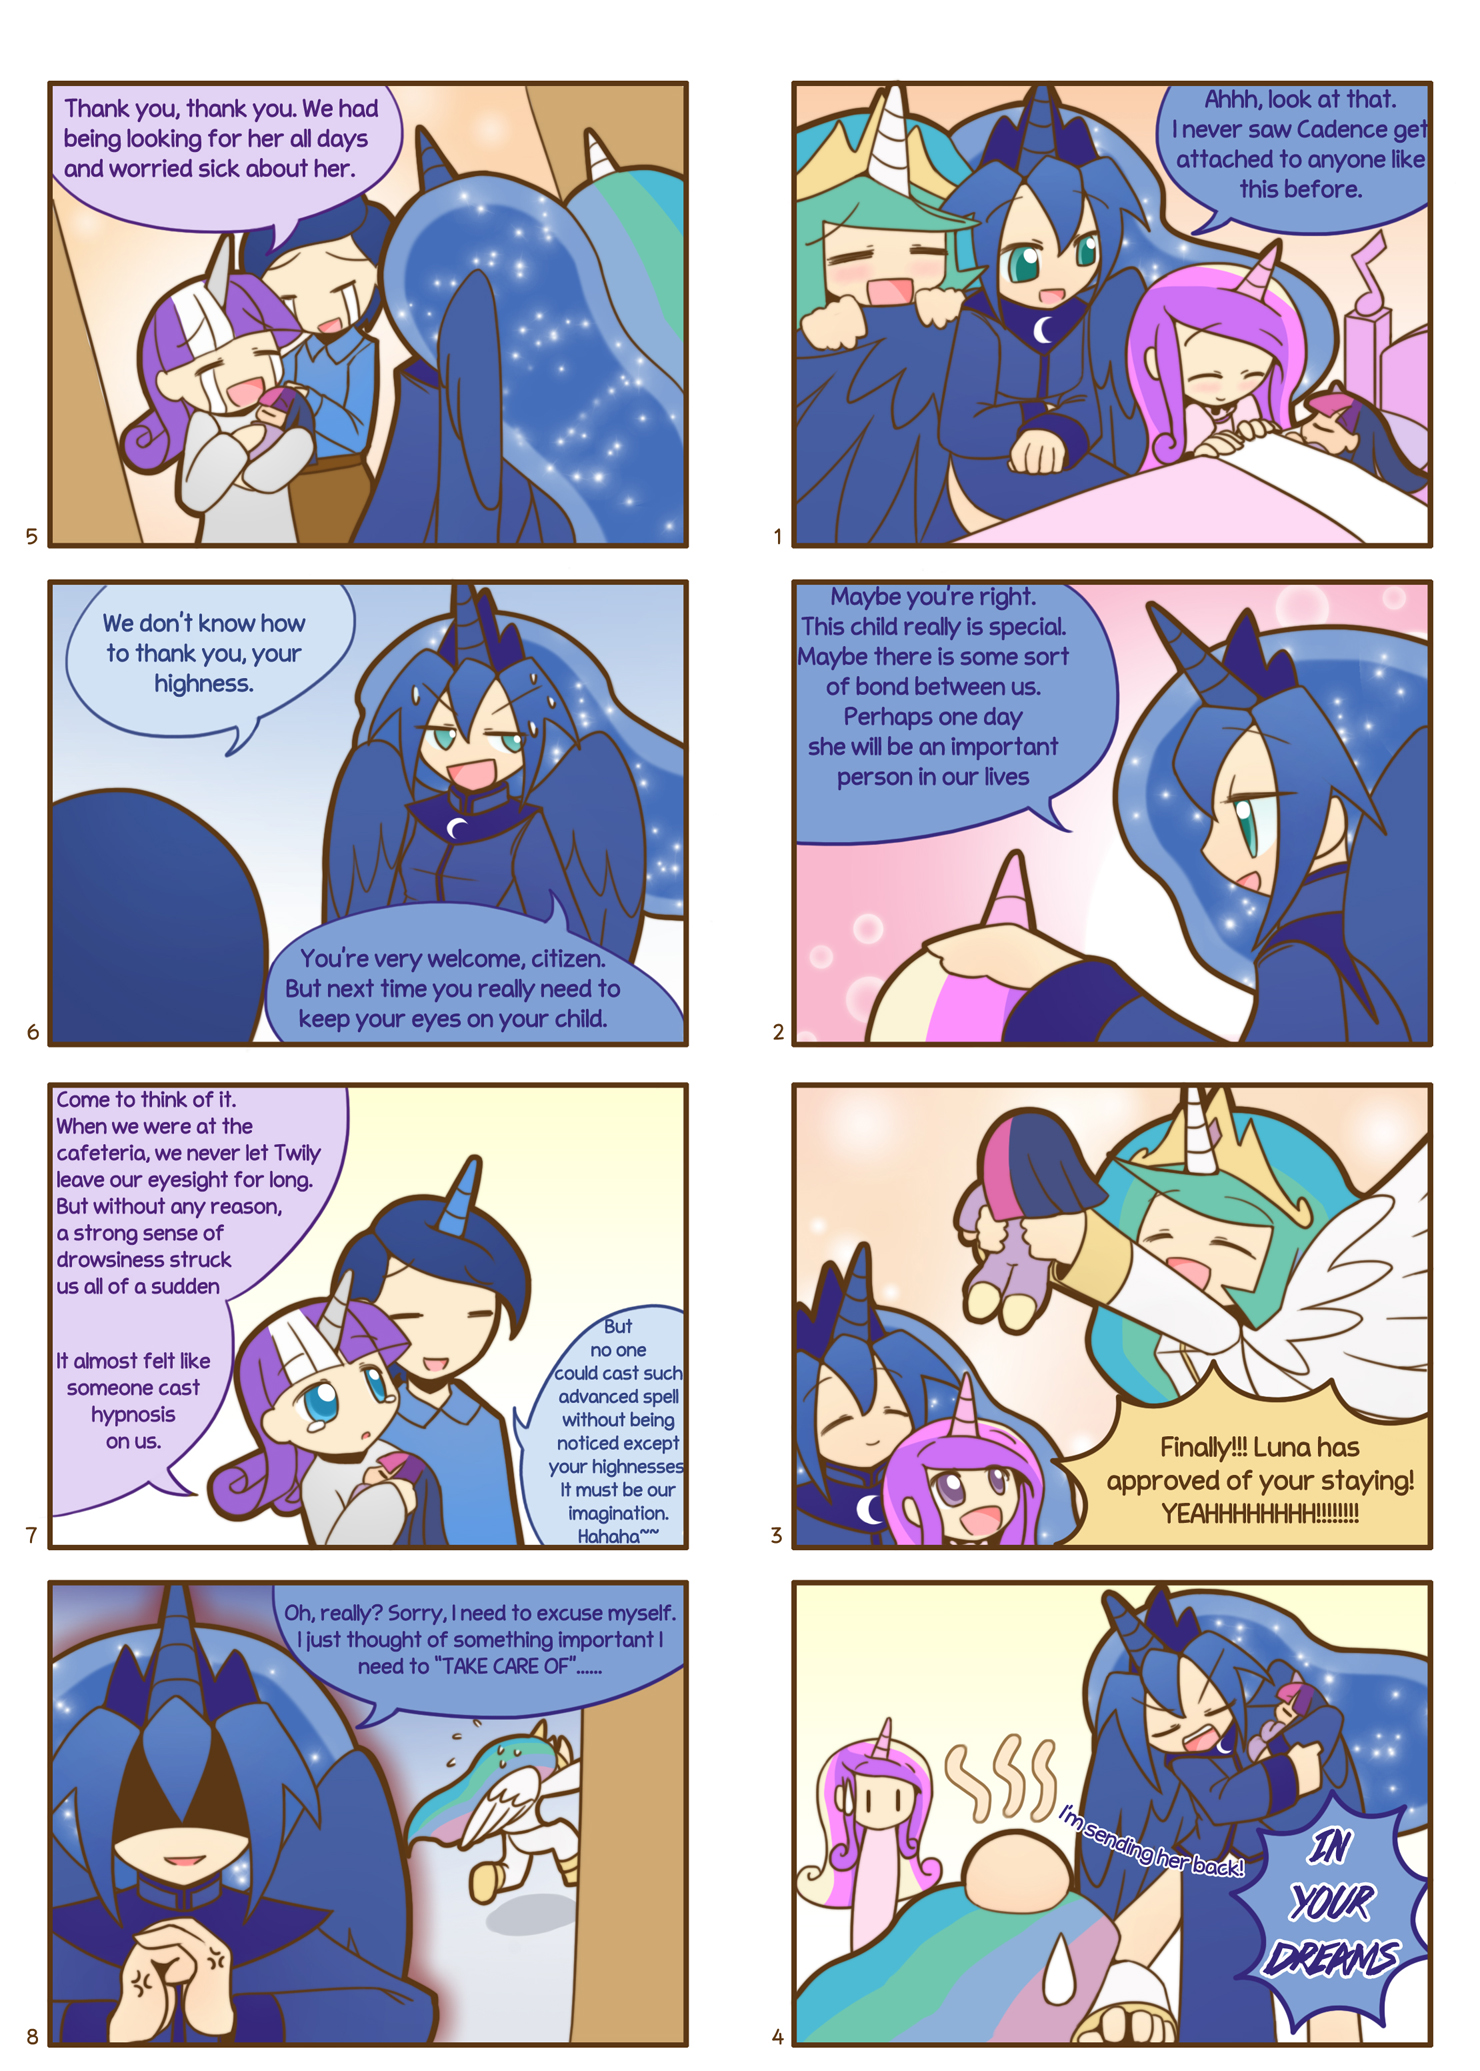 Humanized Pony comic 7, 8 by HowXu